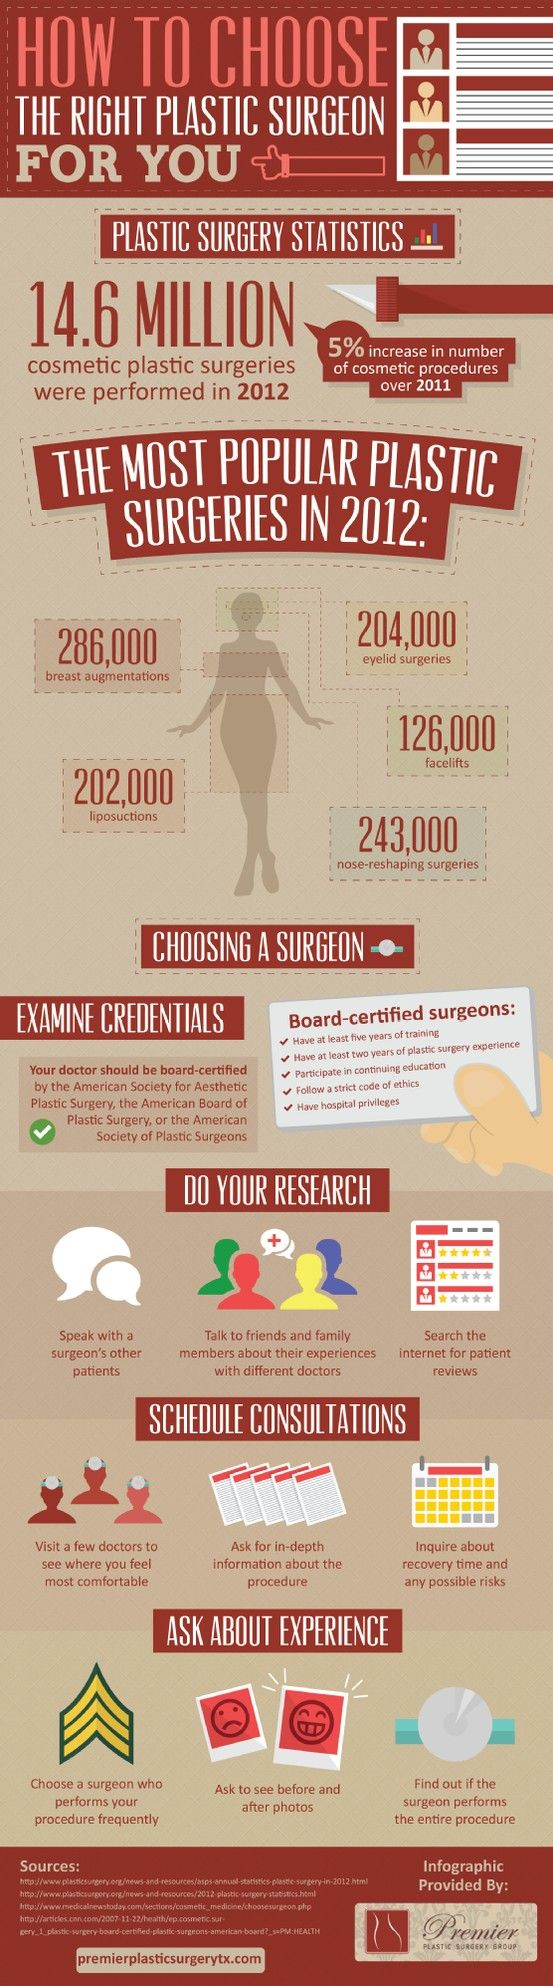 Choose the best plastic surgeon for you